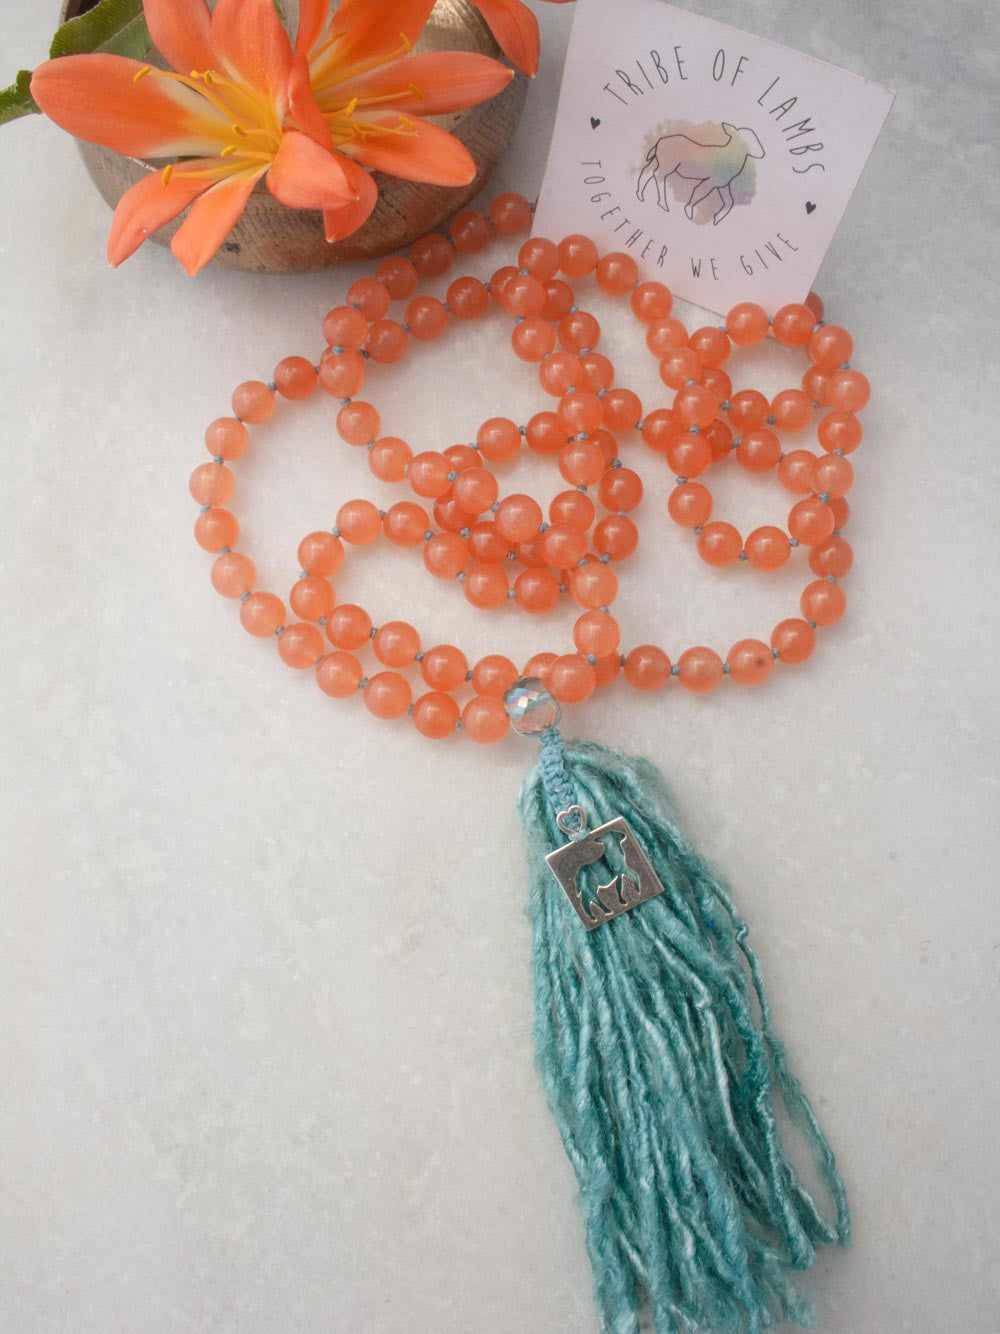 Our sweet and spunky Tribe of Lambs Mala in 10mm Tuscan peach aventurine with silver Tribe of Lambs pendant and sari silk tassel: full view.